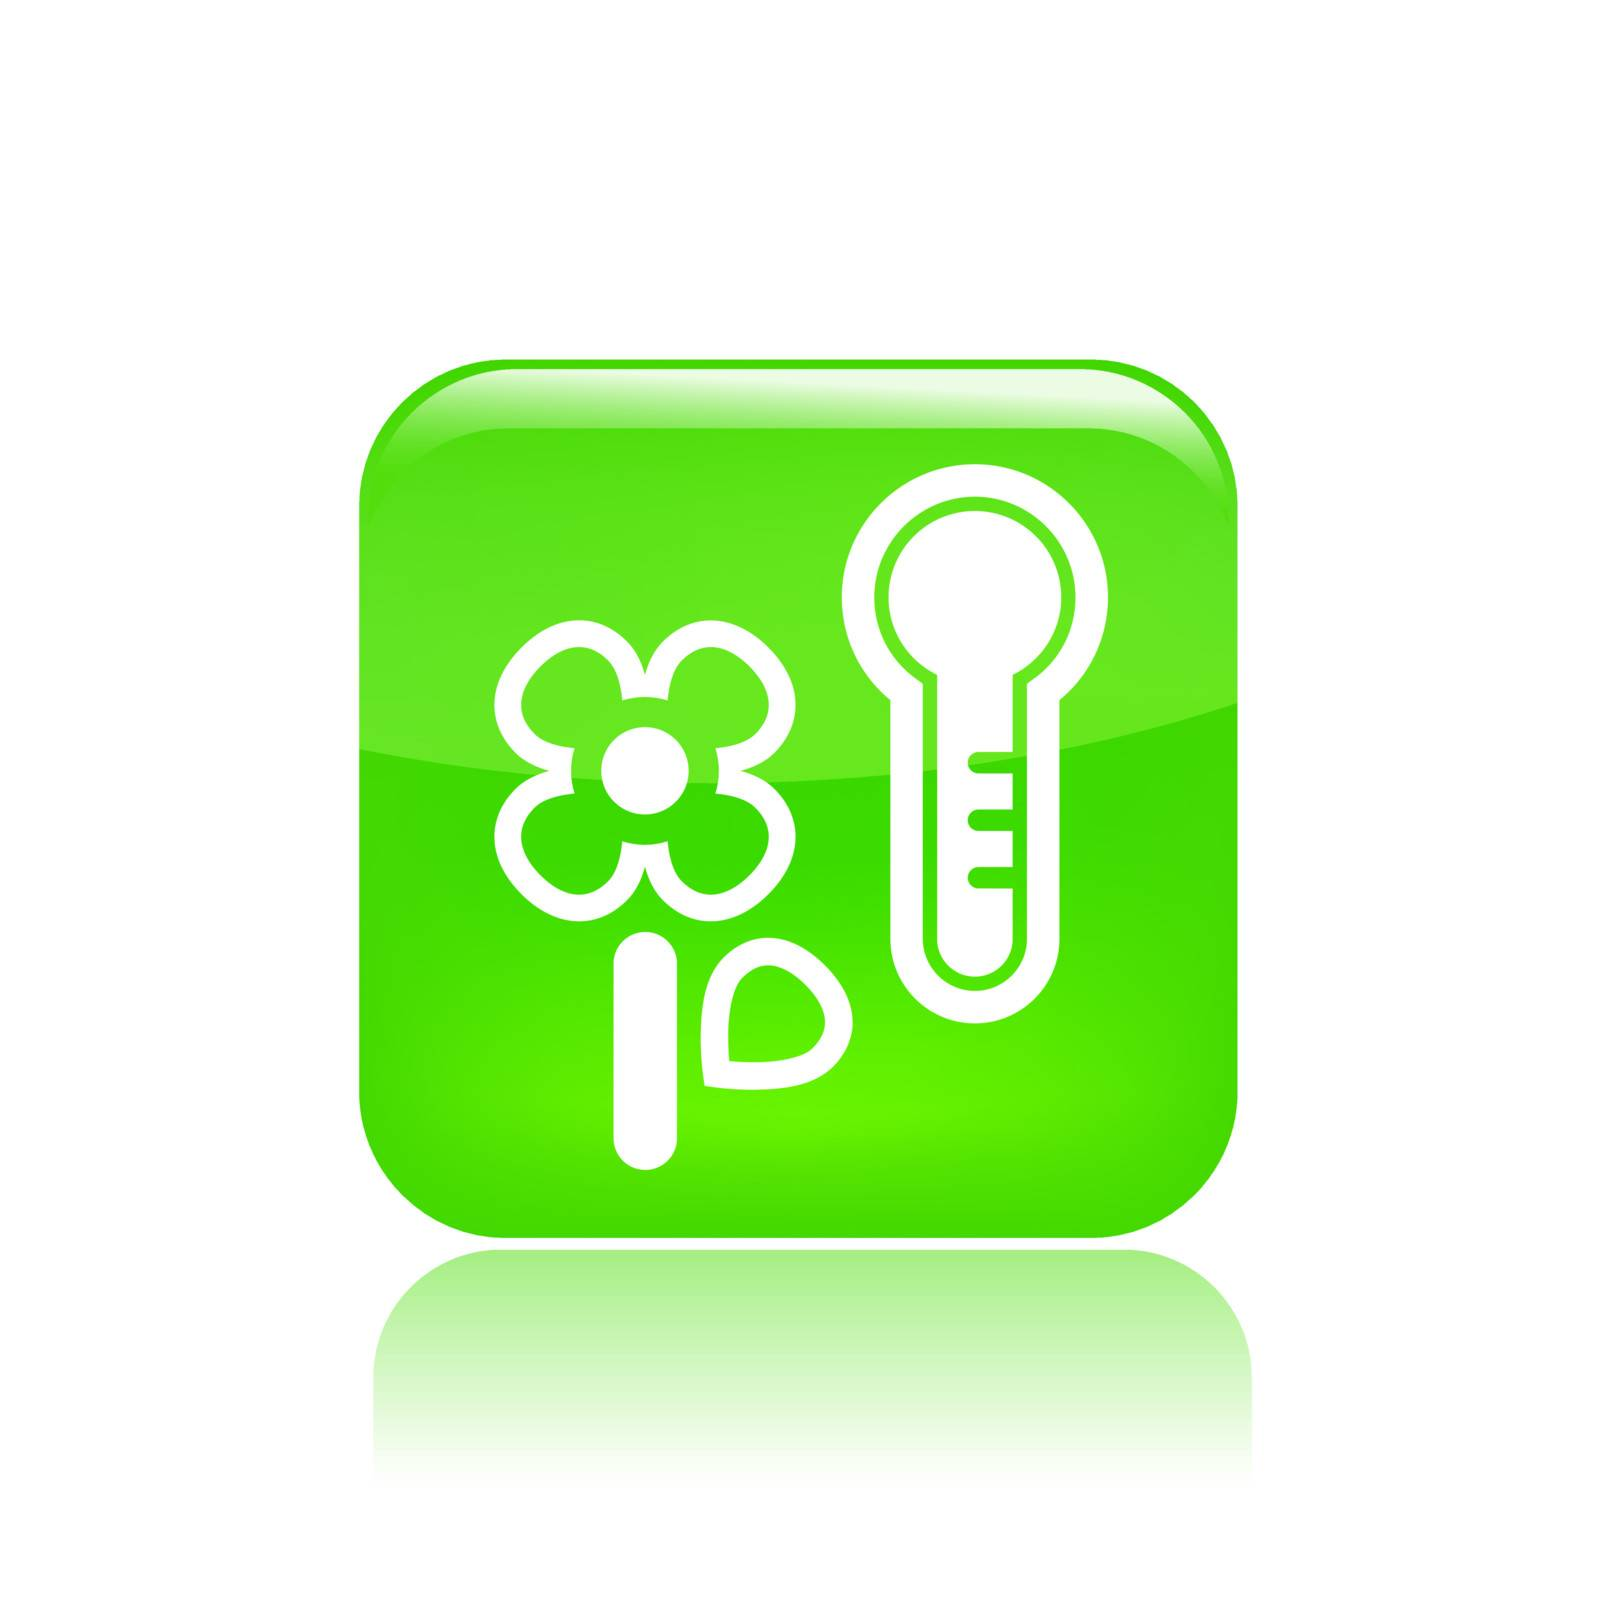 Vector illustration of temperature flower icon  by myVector